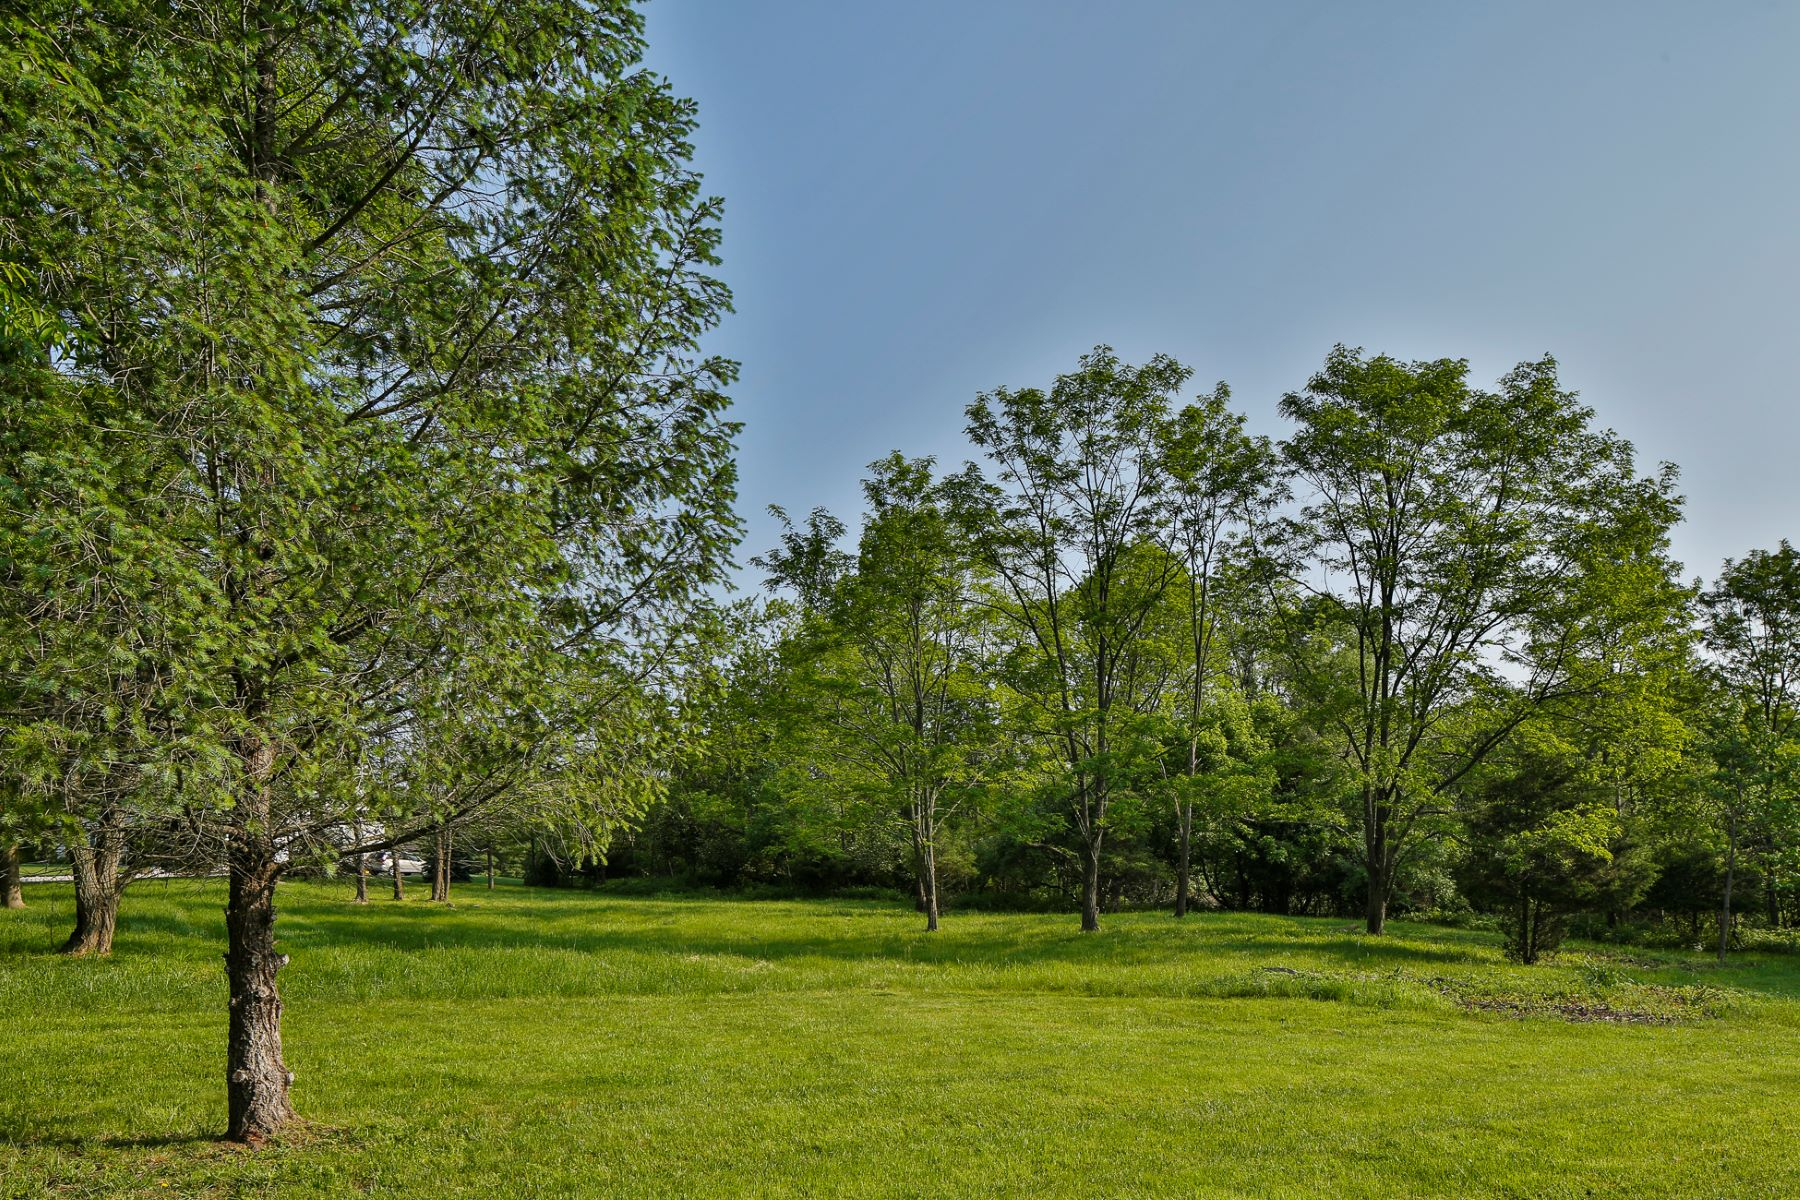 Land for Sale at Ready to Build Lot in Lawrence Township 16 Buckingham Drive, Princeton, New Jersey 08540 United States